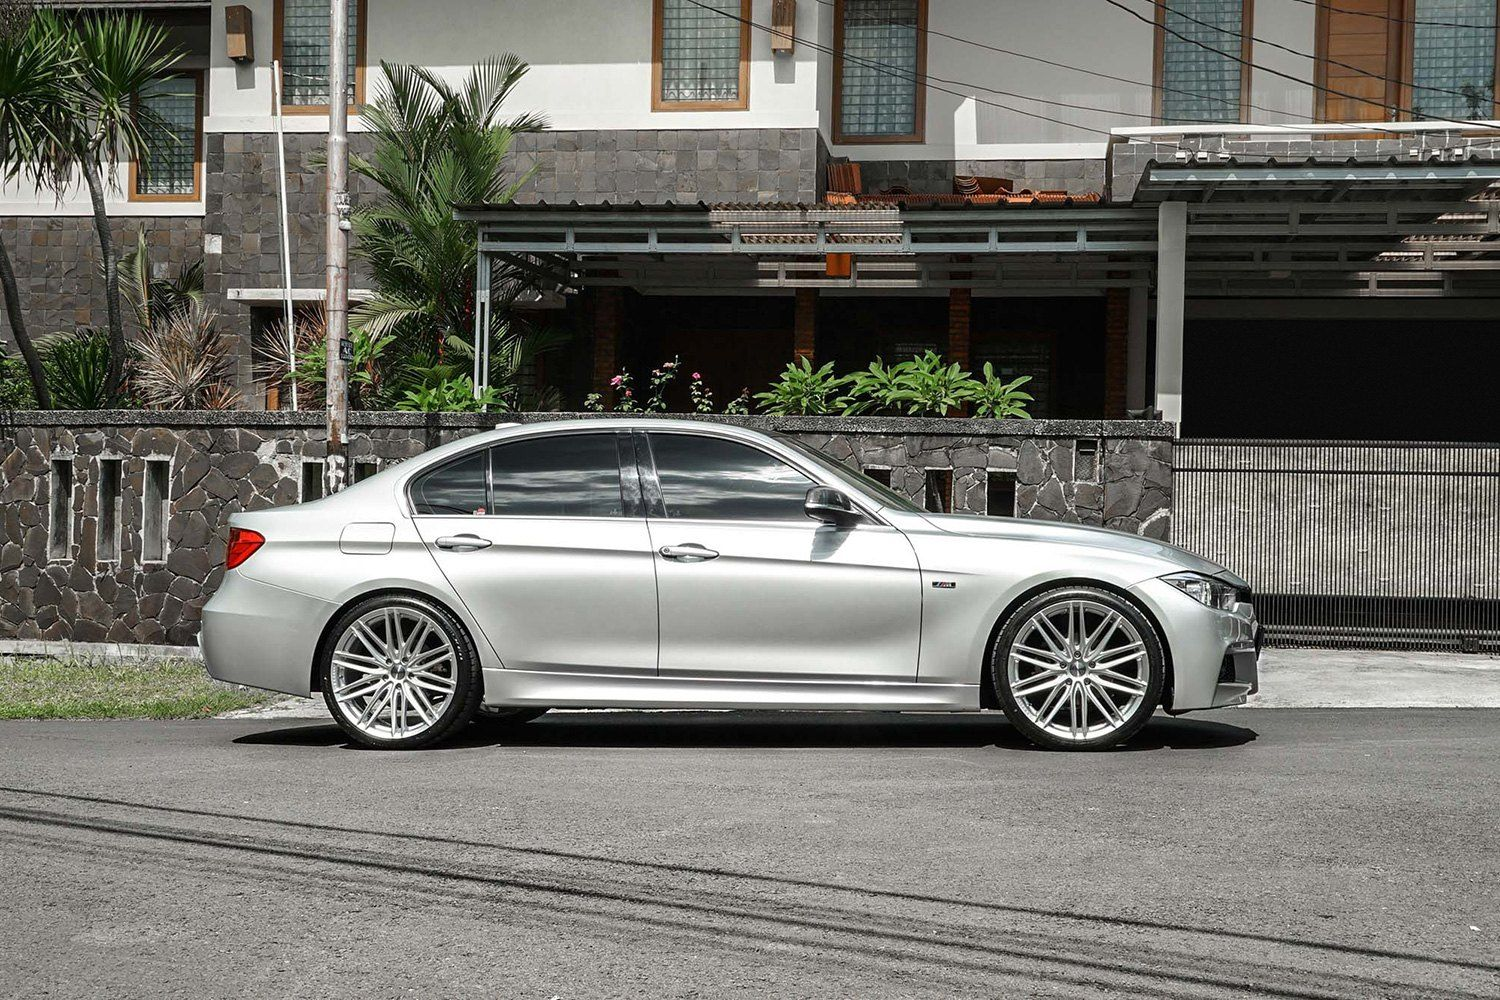 Vossen Wheels On Bmw 3 Series Bmw Vossenwheels With Images